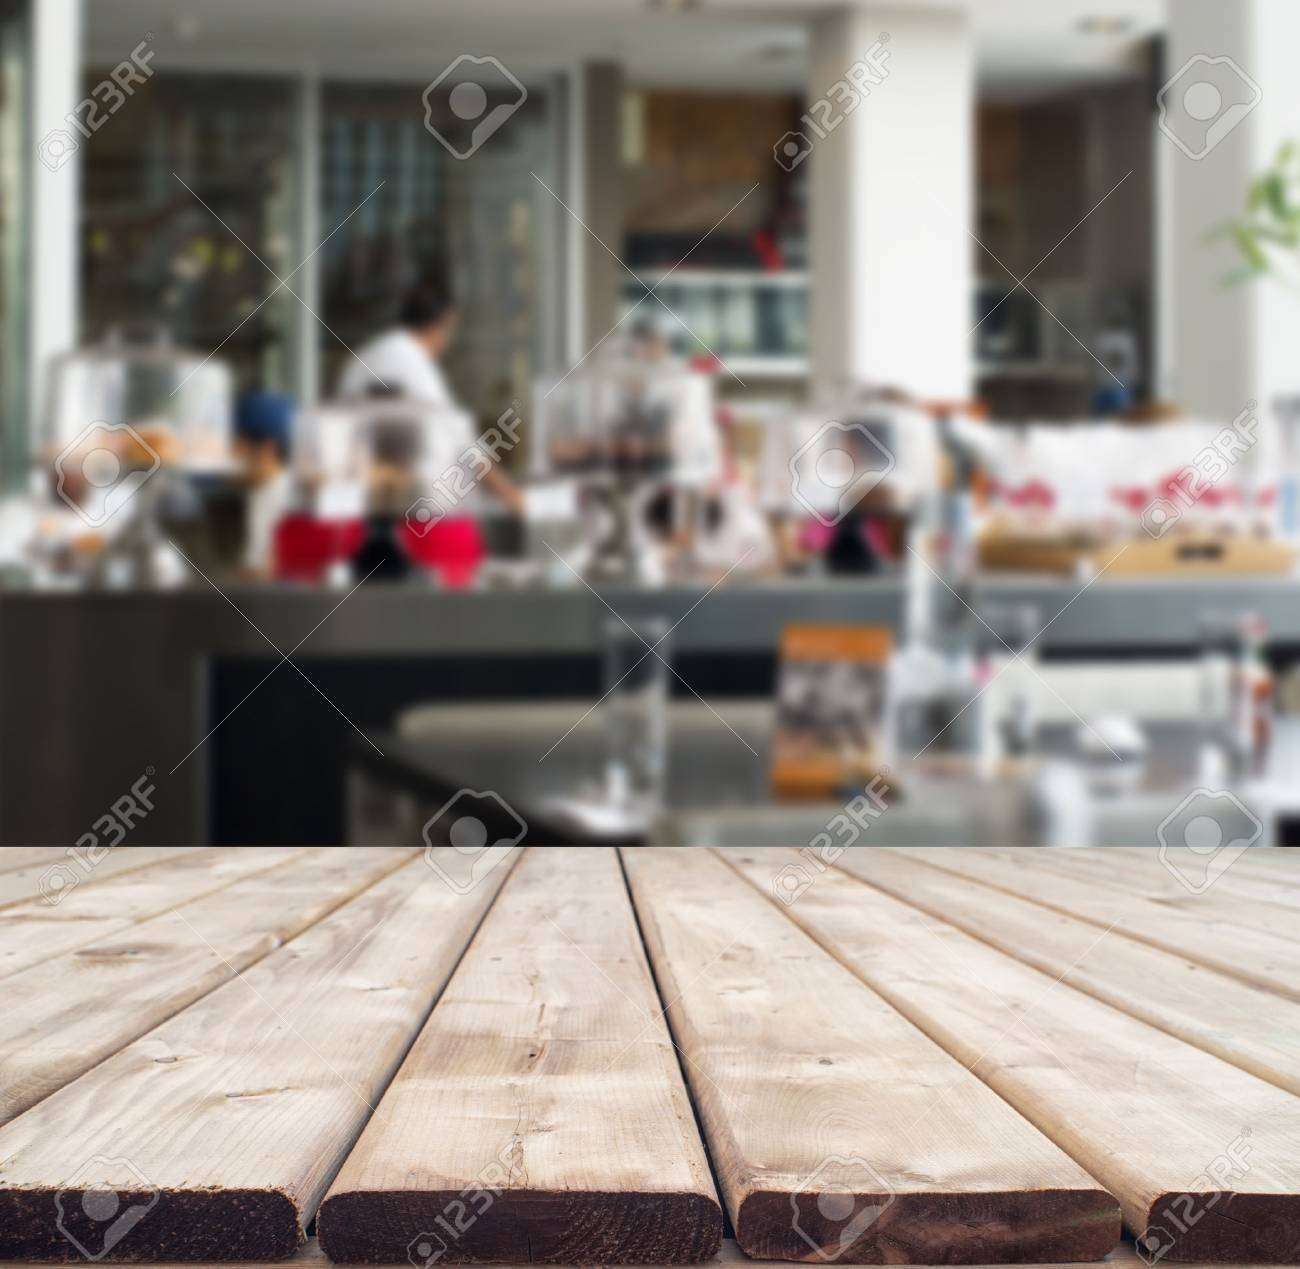 Rustic Wooden Table Perspective Showing Interior Of Modern Restaurant Stock Photo Picture And Royalty Free Image Image 59923955